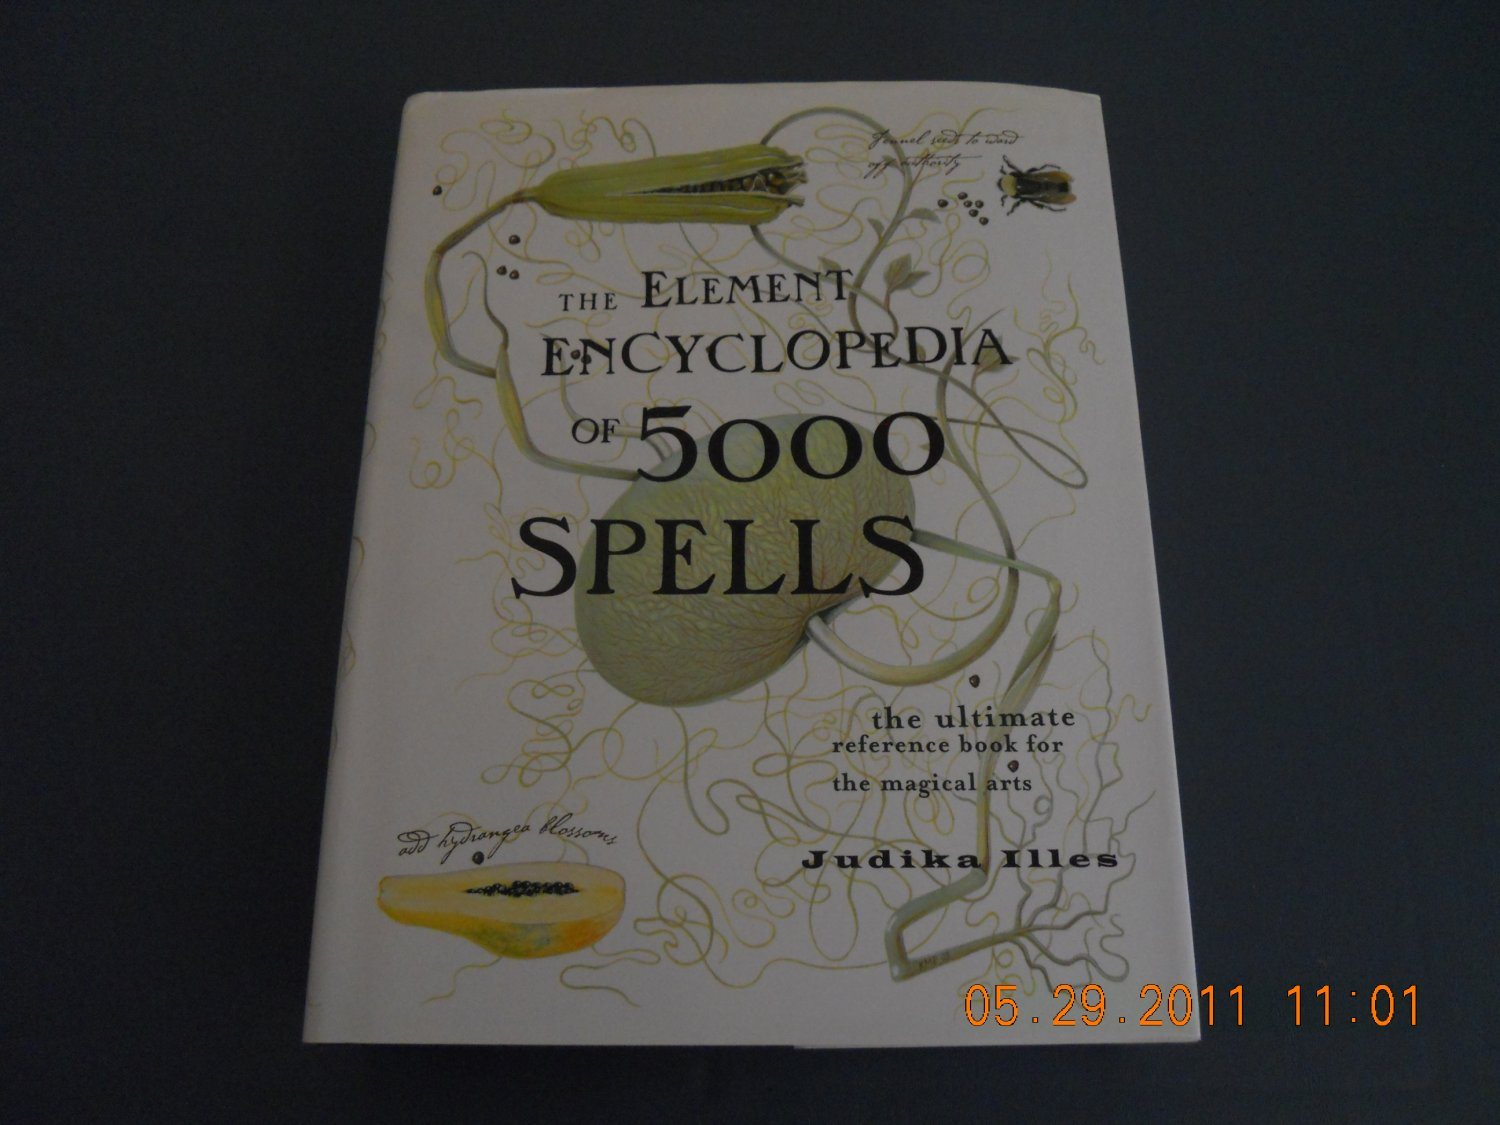 The Element Encyclopedia of 5000 Spells: The Ultimate Reference Book for the Magical Arts hardback